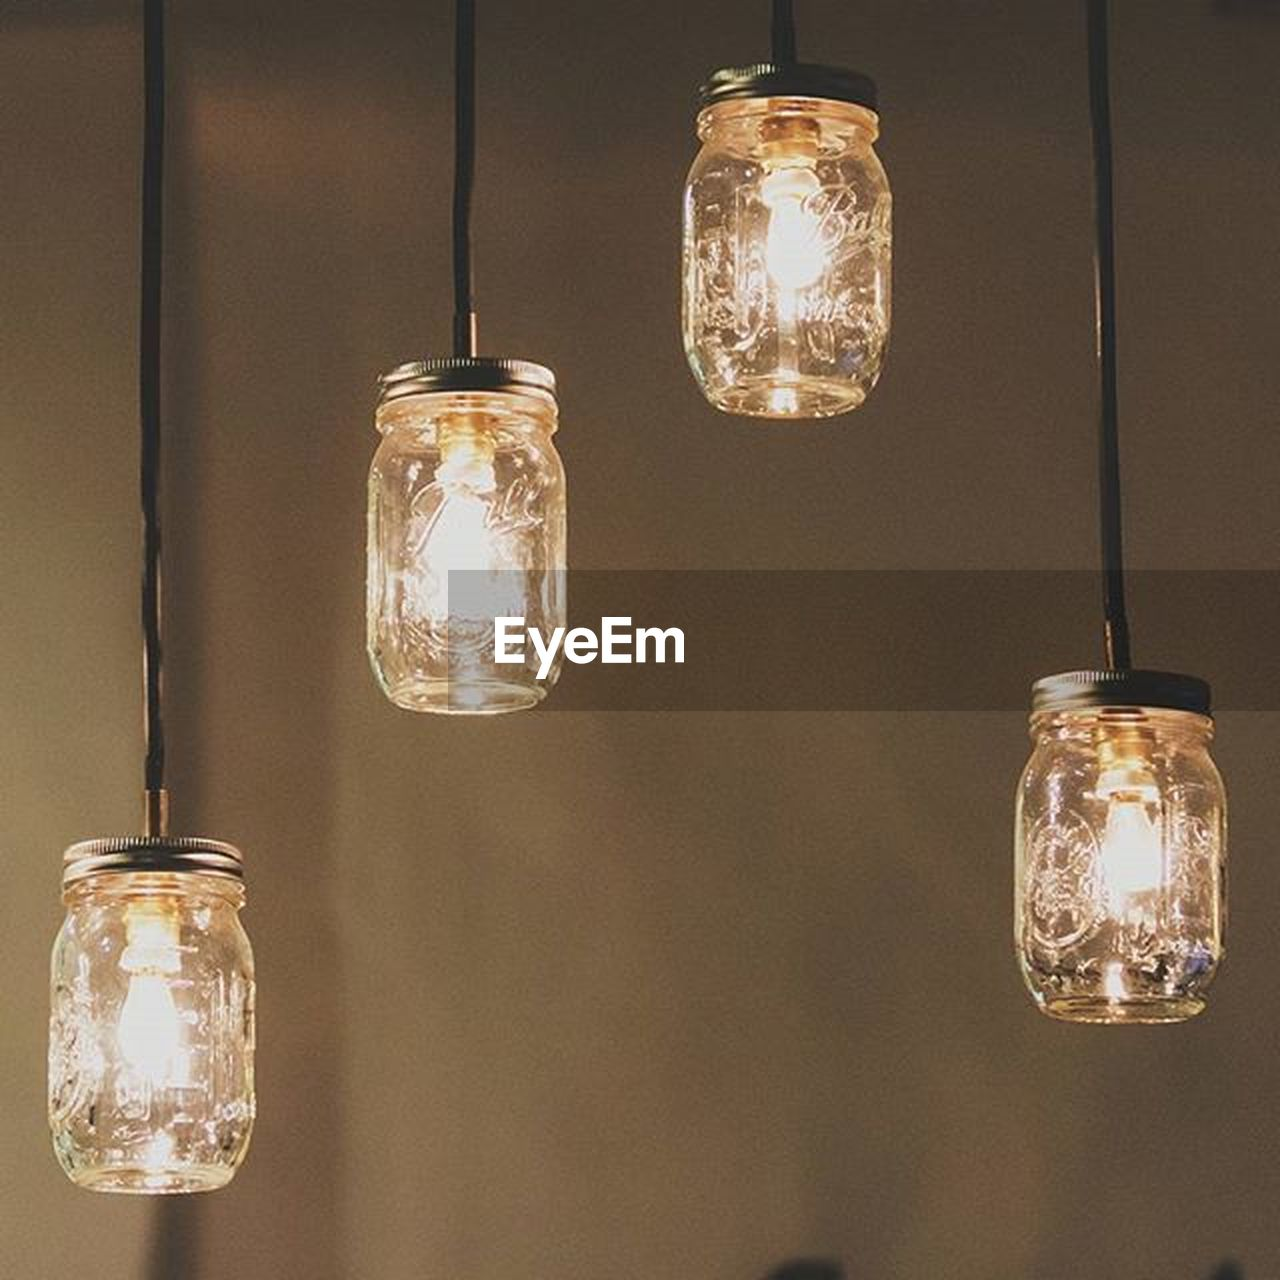 lighting equipment, electricity, light bulb, illuminated, hanging, filament, glowing, electric light, bulb, electric lamp, no people, technology, cable, innovation, fuel and power generation, low angle view, close-up, indoors, lantern, day